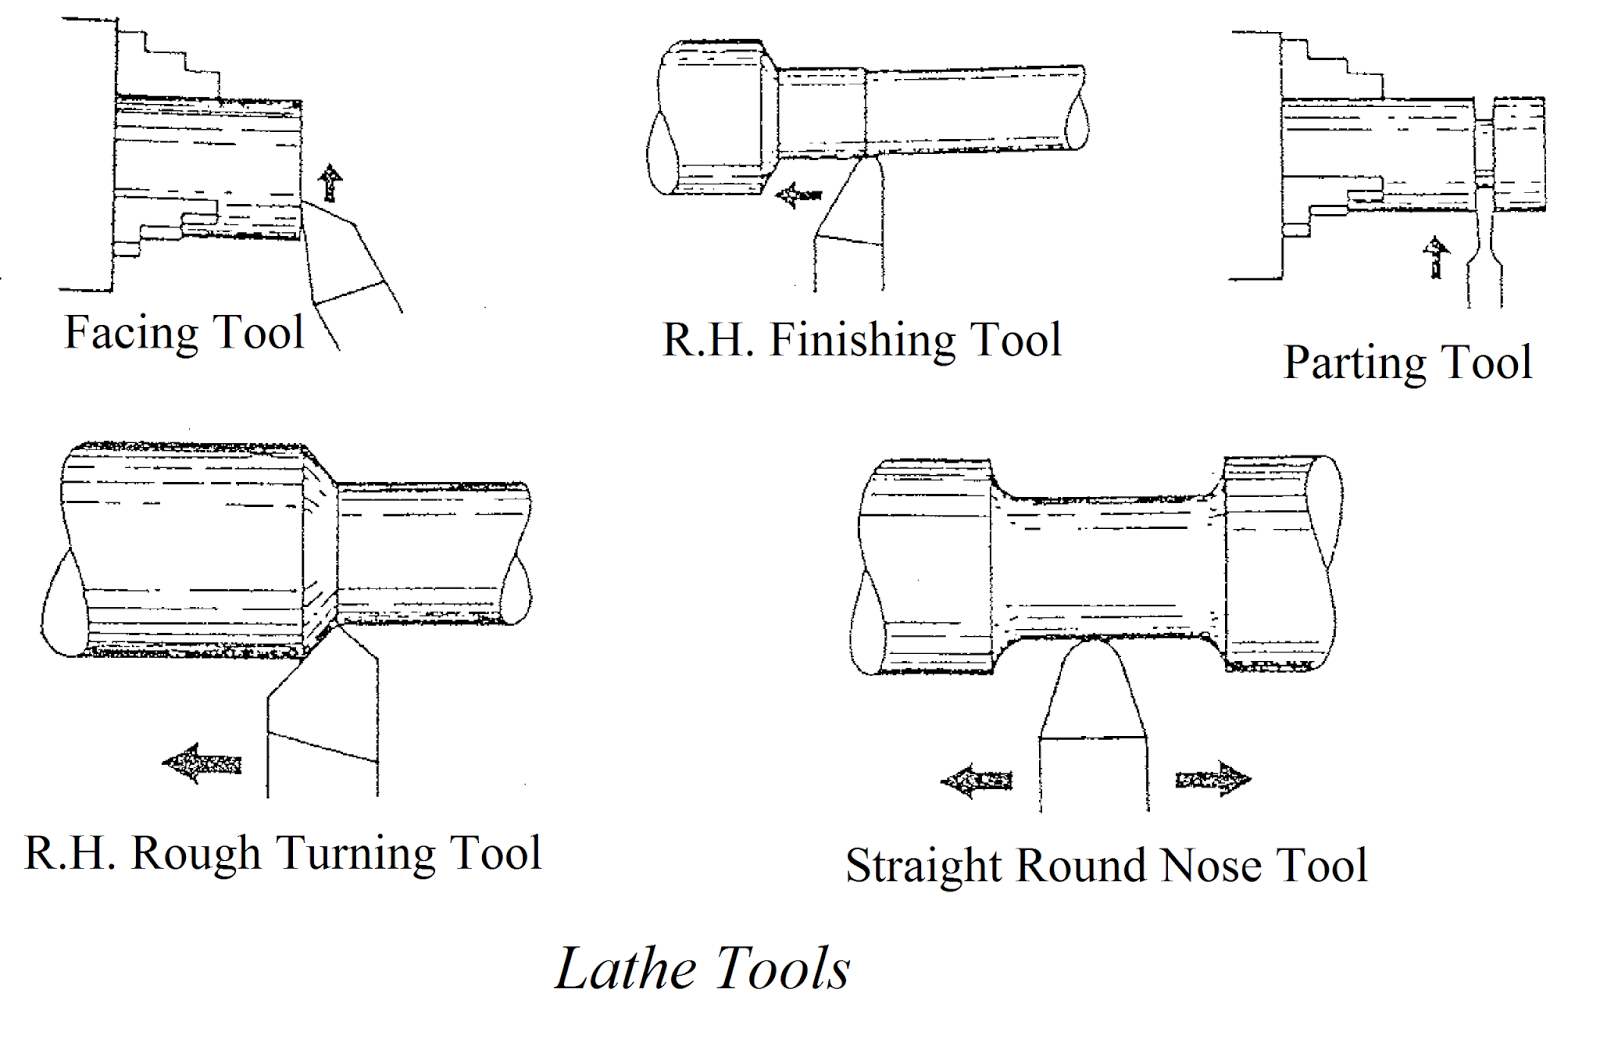 Questions - Answers  About The Lathe